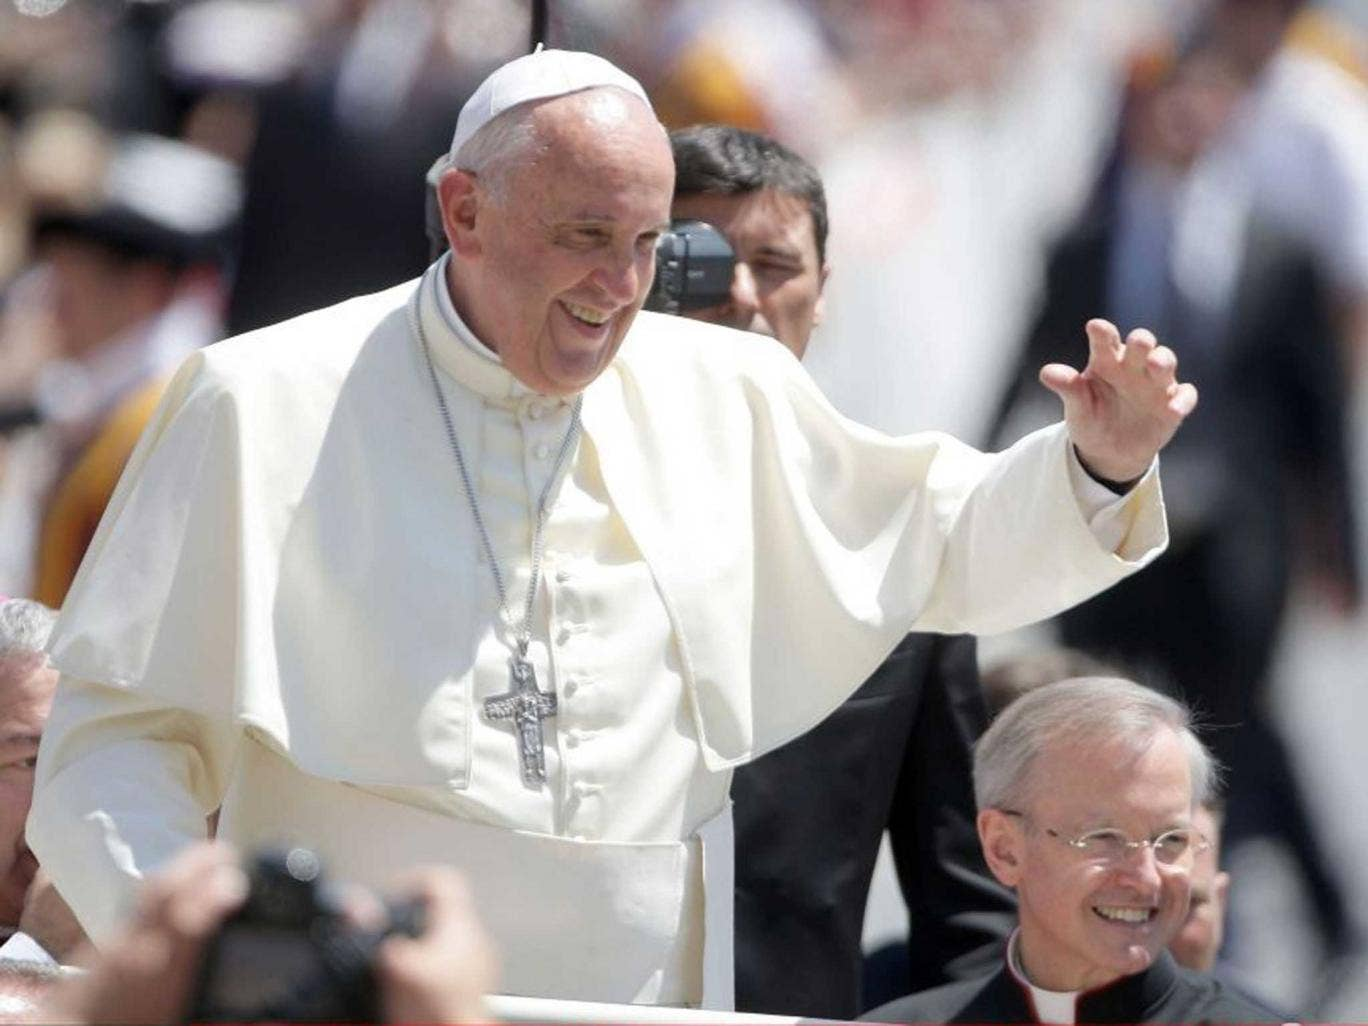 Pope Francis has dismissed the five Italians who oversaw the Vatican's financial watchdog